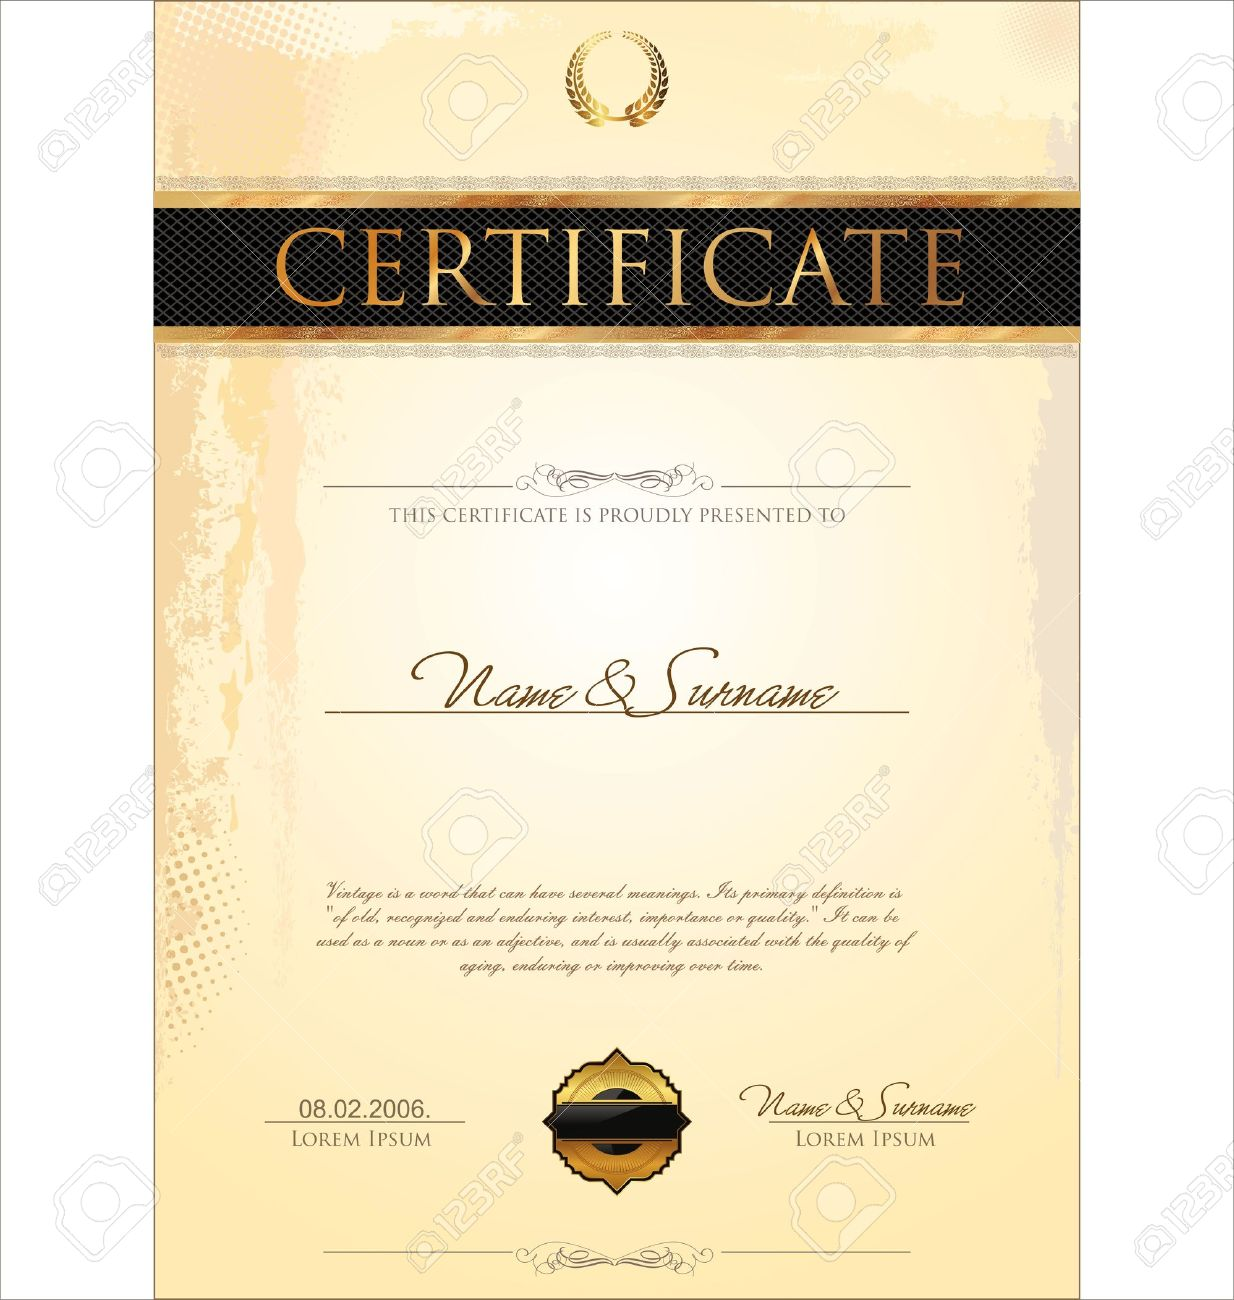 Microsoft office certificate template gallery templates example microsoft stock certificate template pasoevolist microsoft stock certificate template alramifo gallery yadclub Choice Image